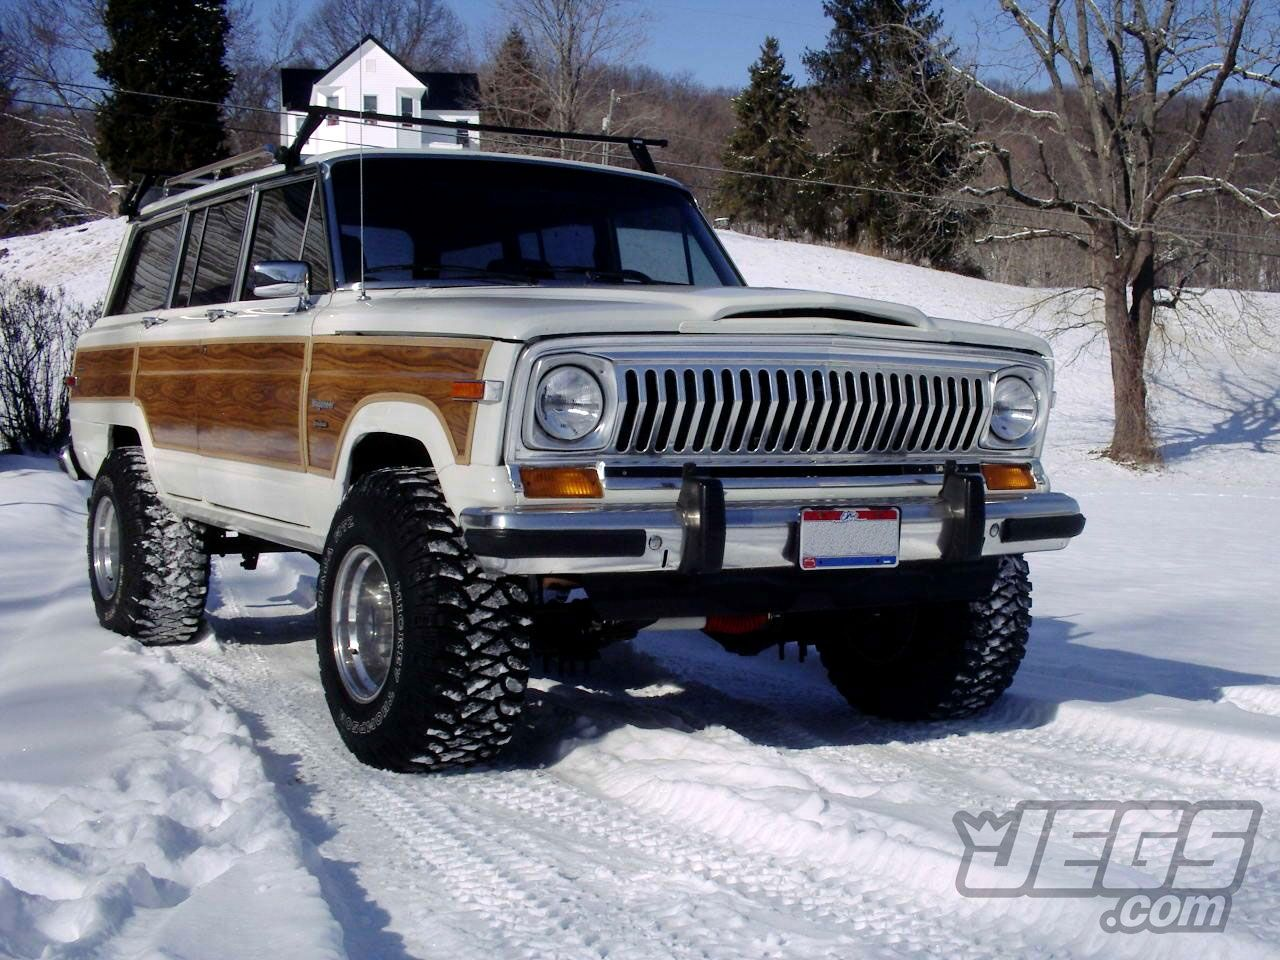 pin by jegs performance on trucks jeeps and suvs jeep wagoneer vintage jeep jeep truck jeep wagoneer